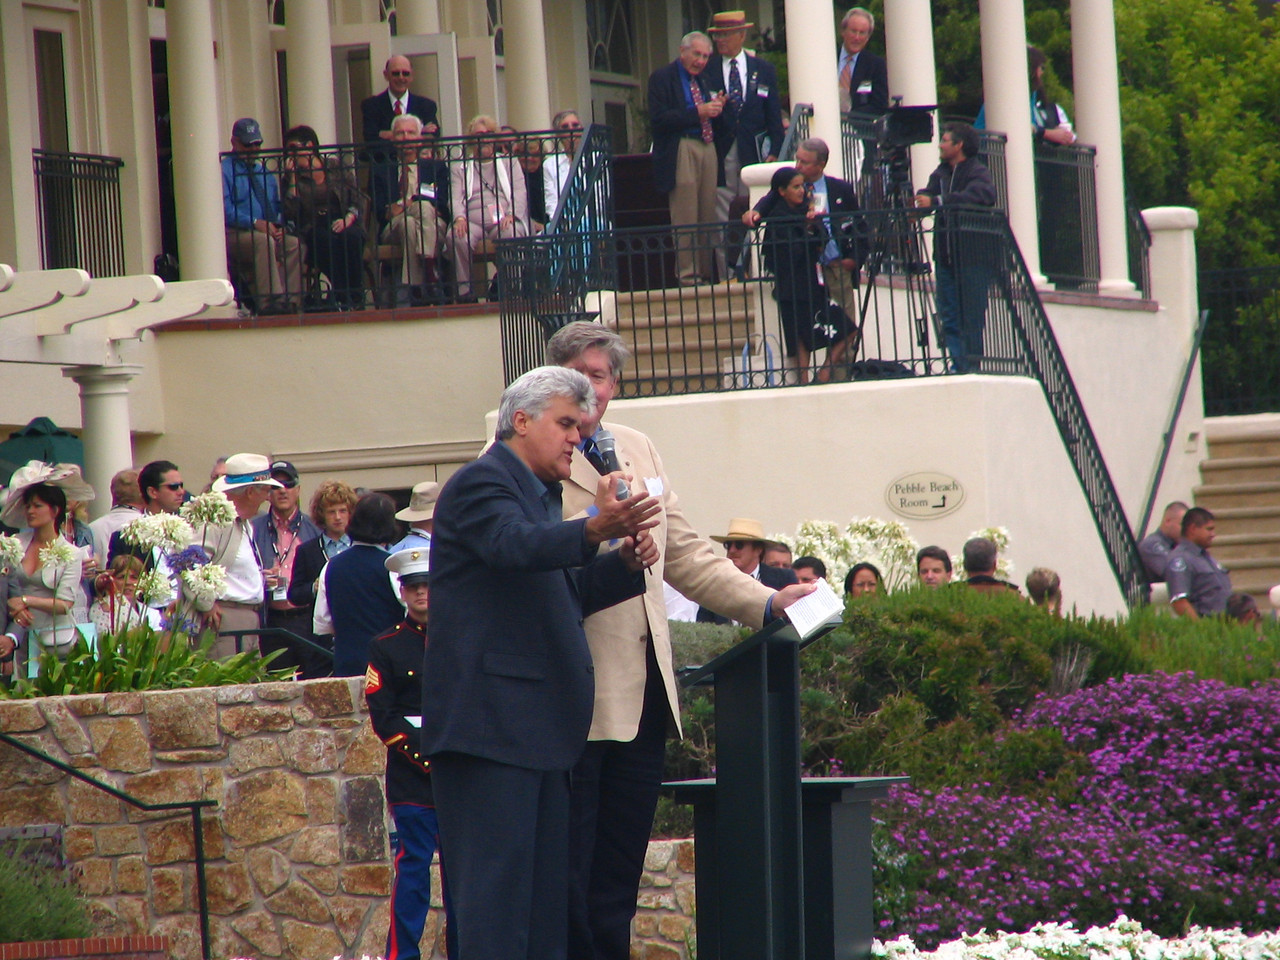 Pebble Beach Concours -- Jay Leno warms up the crowd during raffle drawings